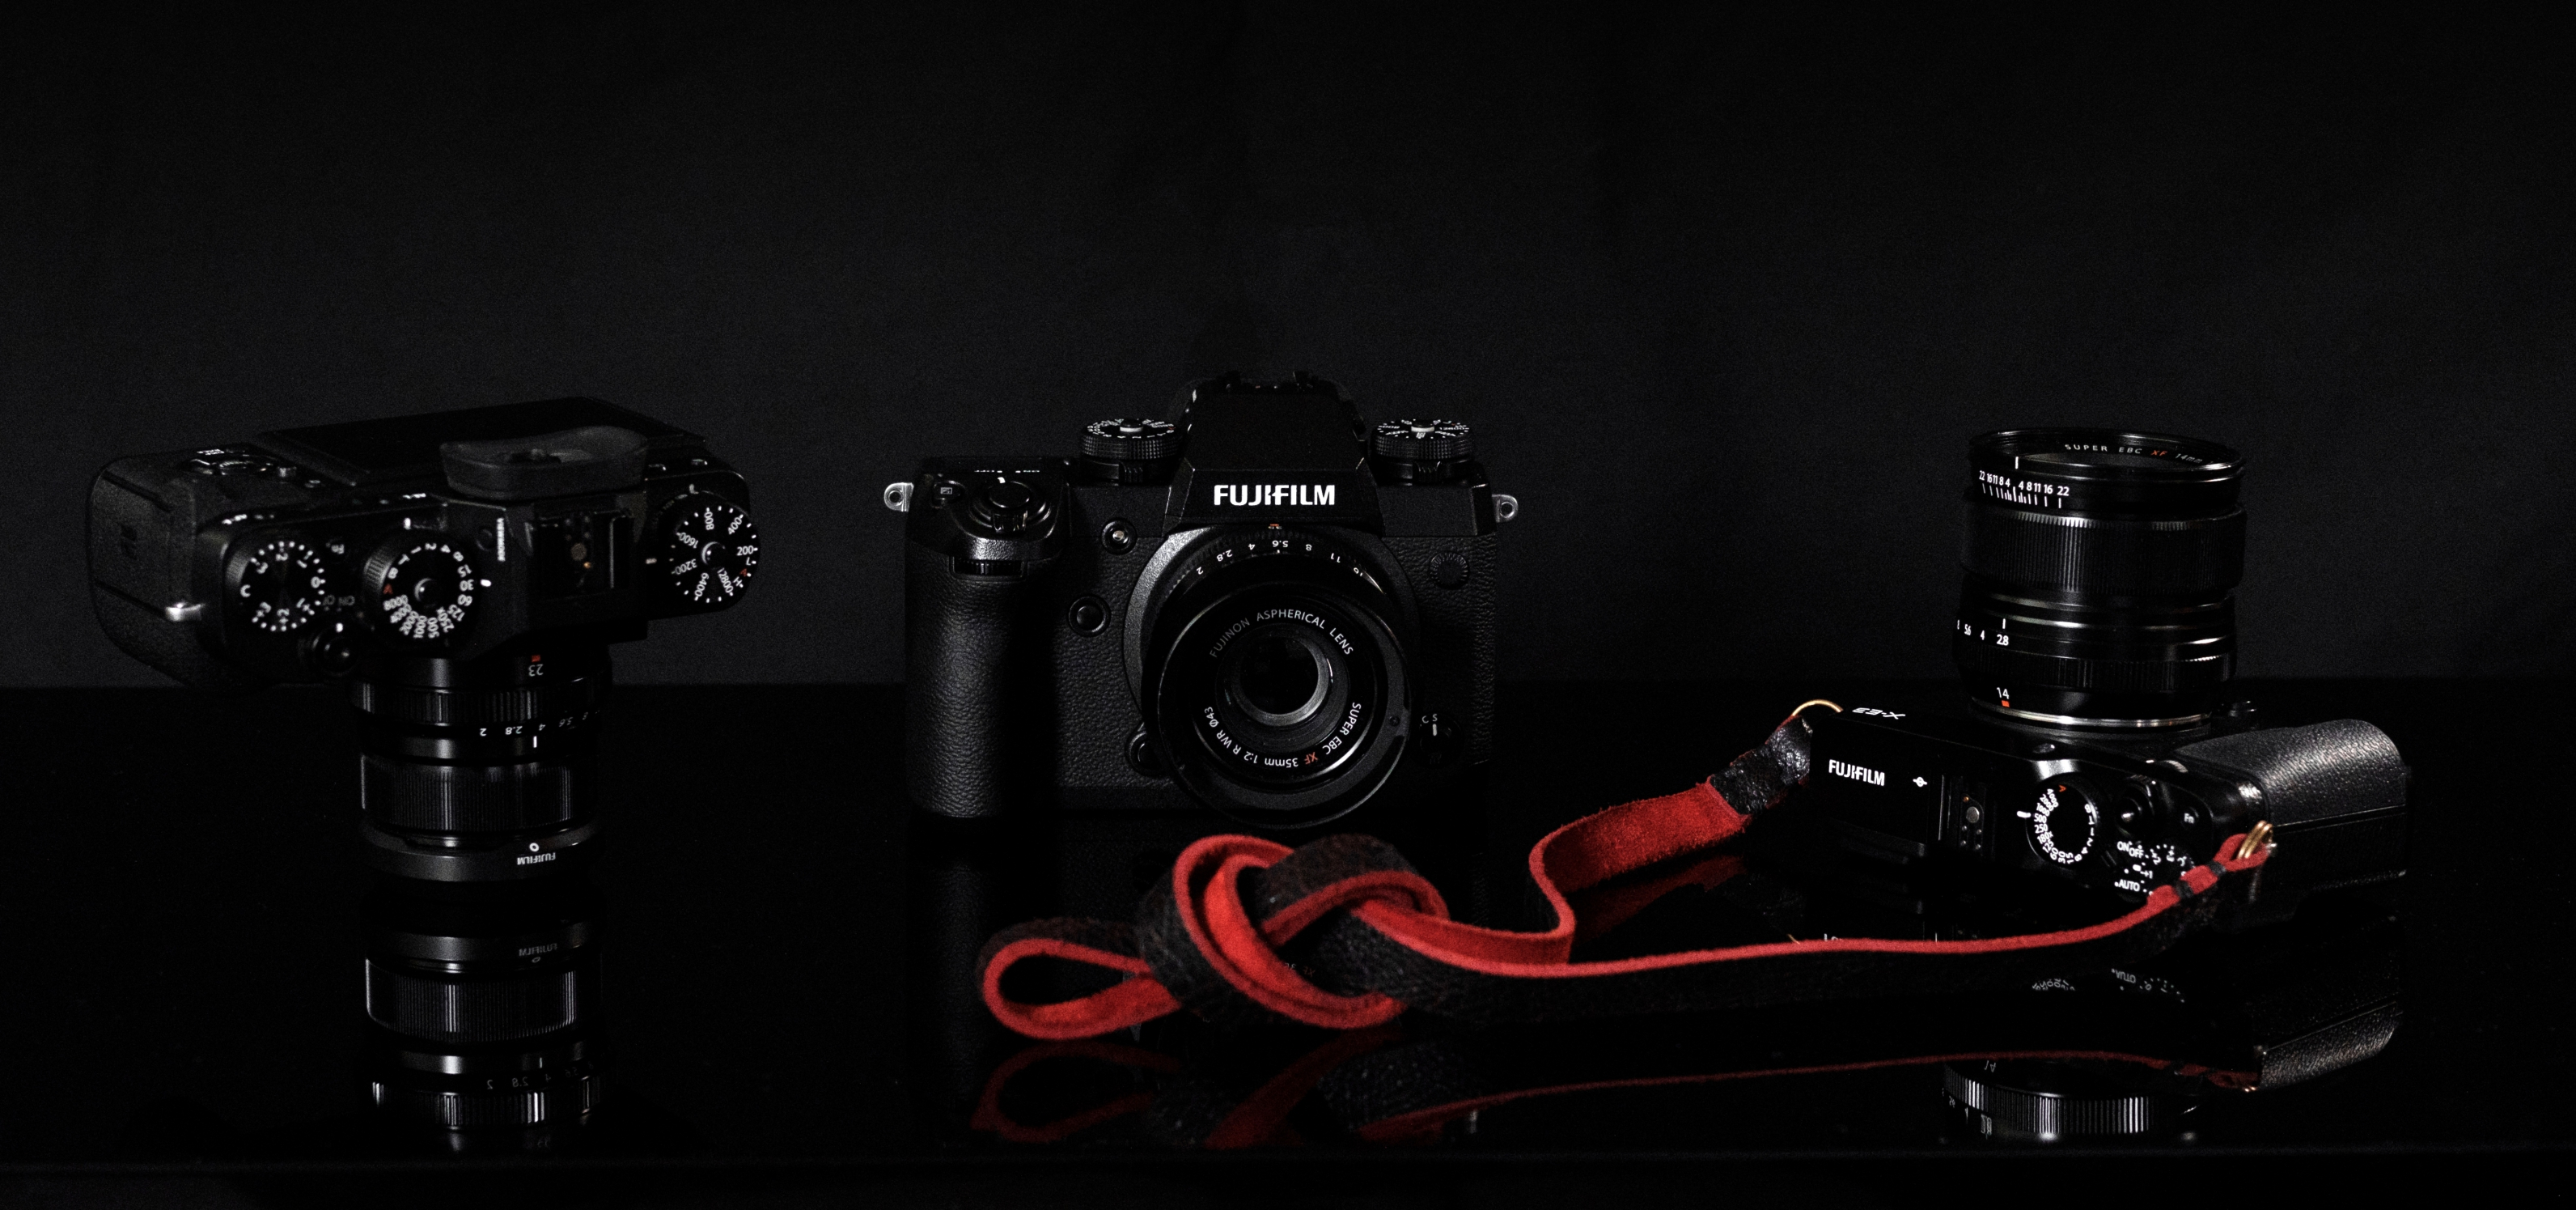 Non-Videographers: Why Buy The New Fujifilm X-H1